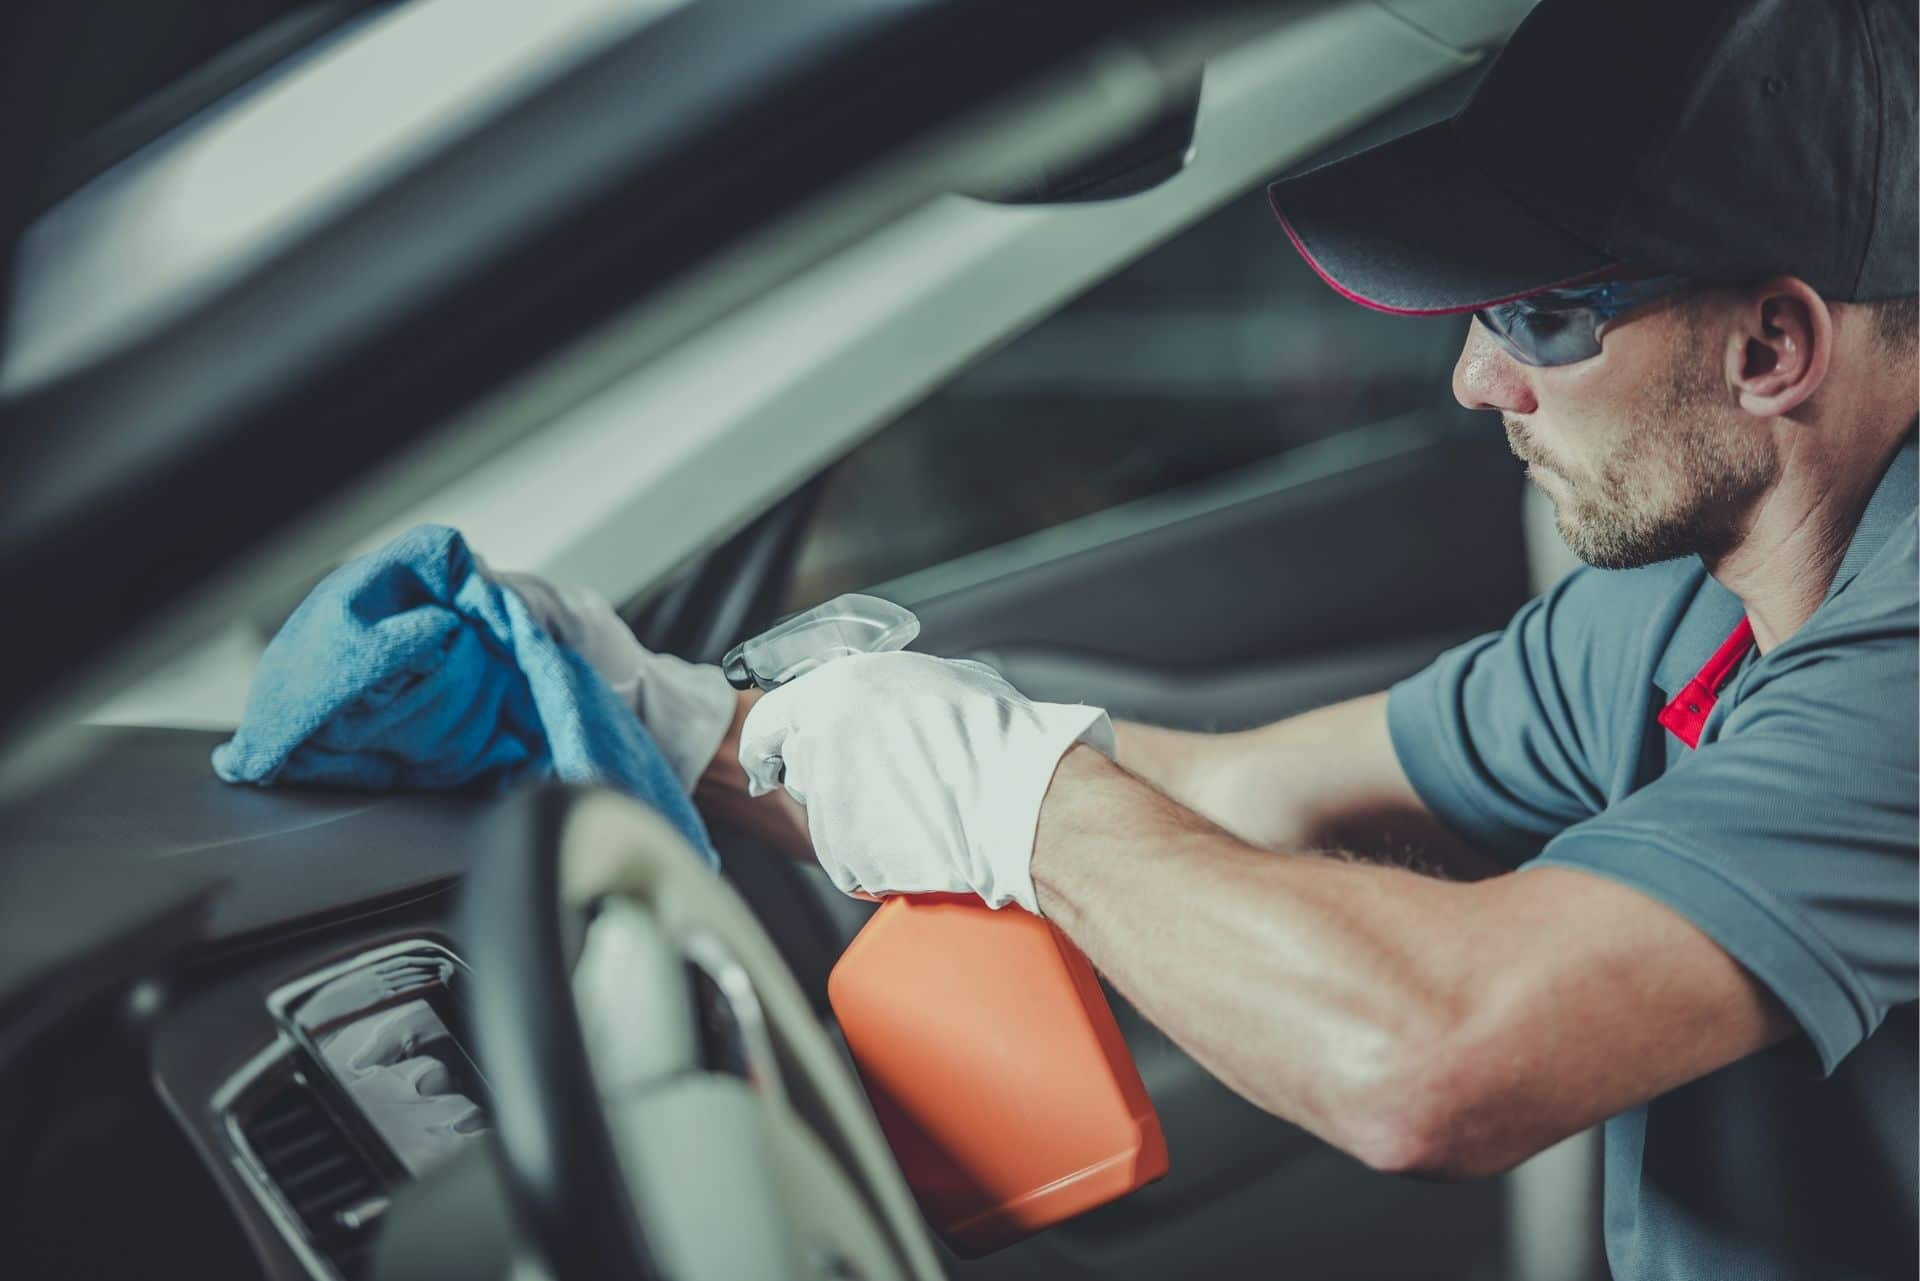 How To Get Rid Of Mold In Car